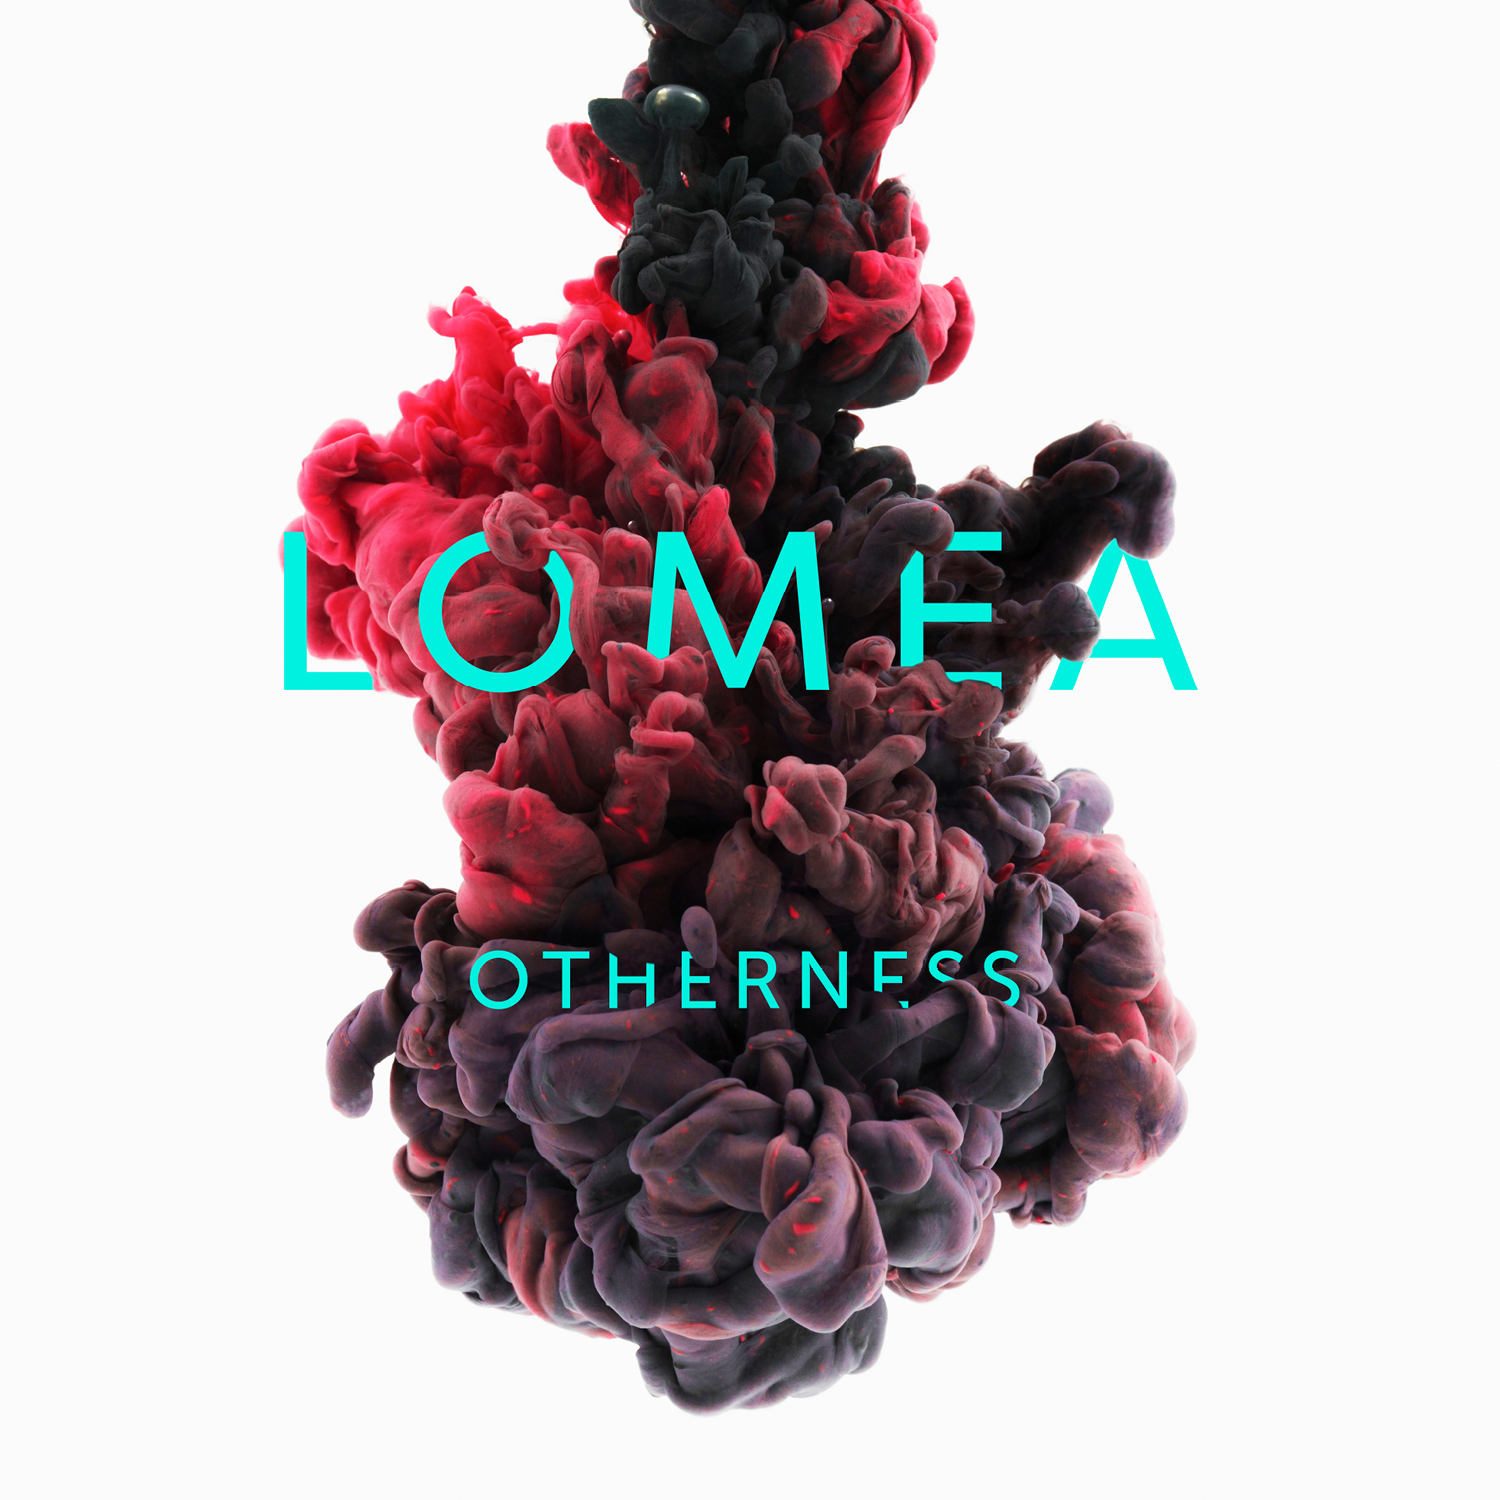 New music, downtempo electronica, chill out, hypnotic cinematic sounds from Lomea, London based electronic music composer and producer, synth player, synthesizer wizard Rich Keyworth on Woking record label Here & Now Recordings Cinematic Sounds.